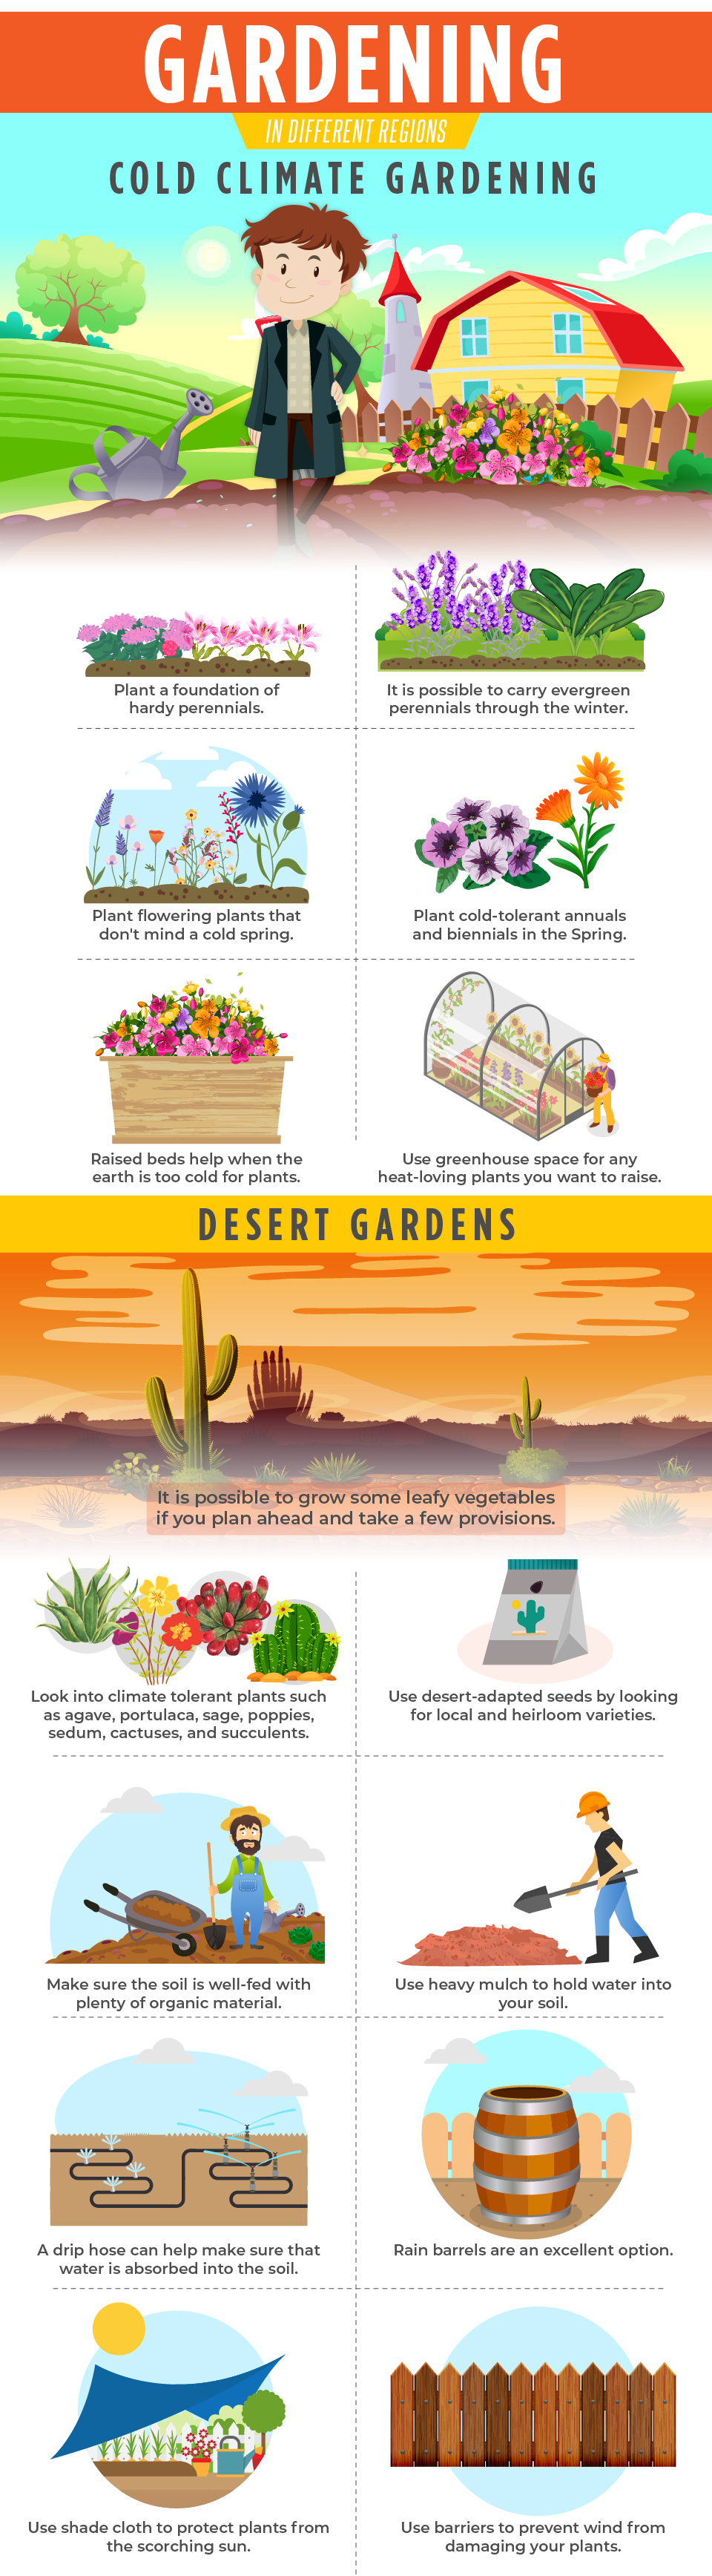 Gardening in Different Regions